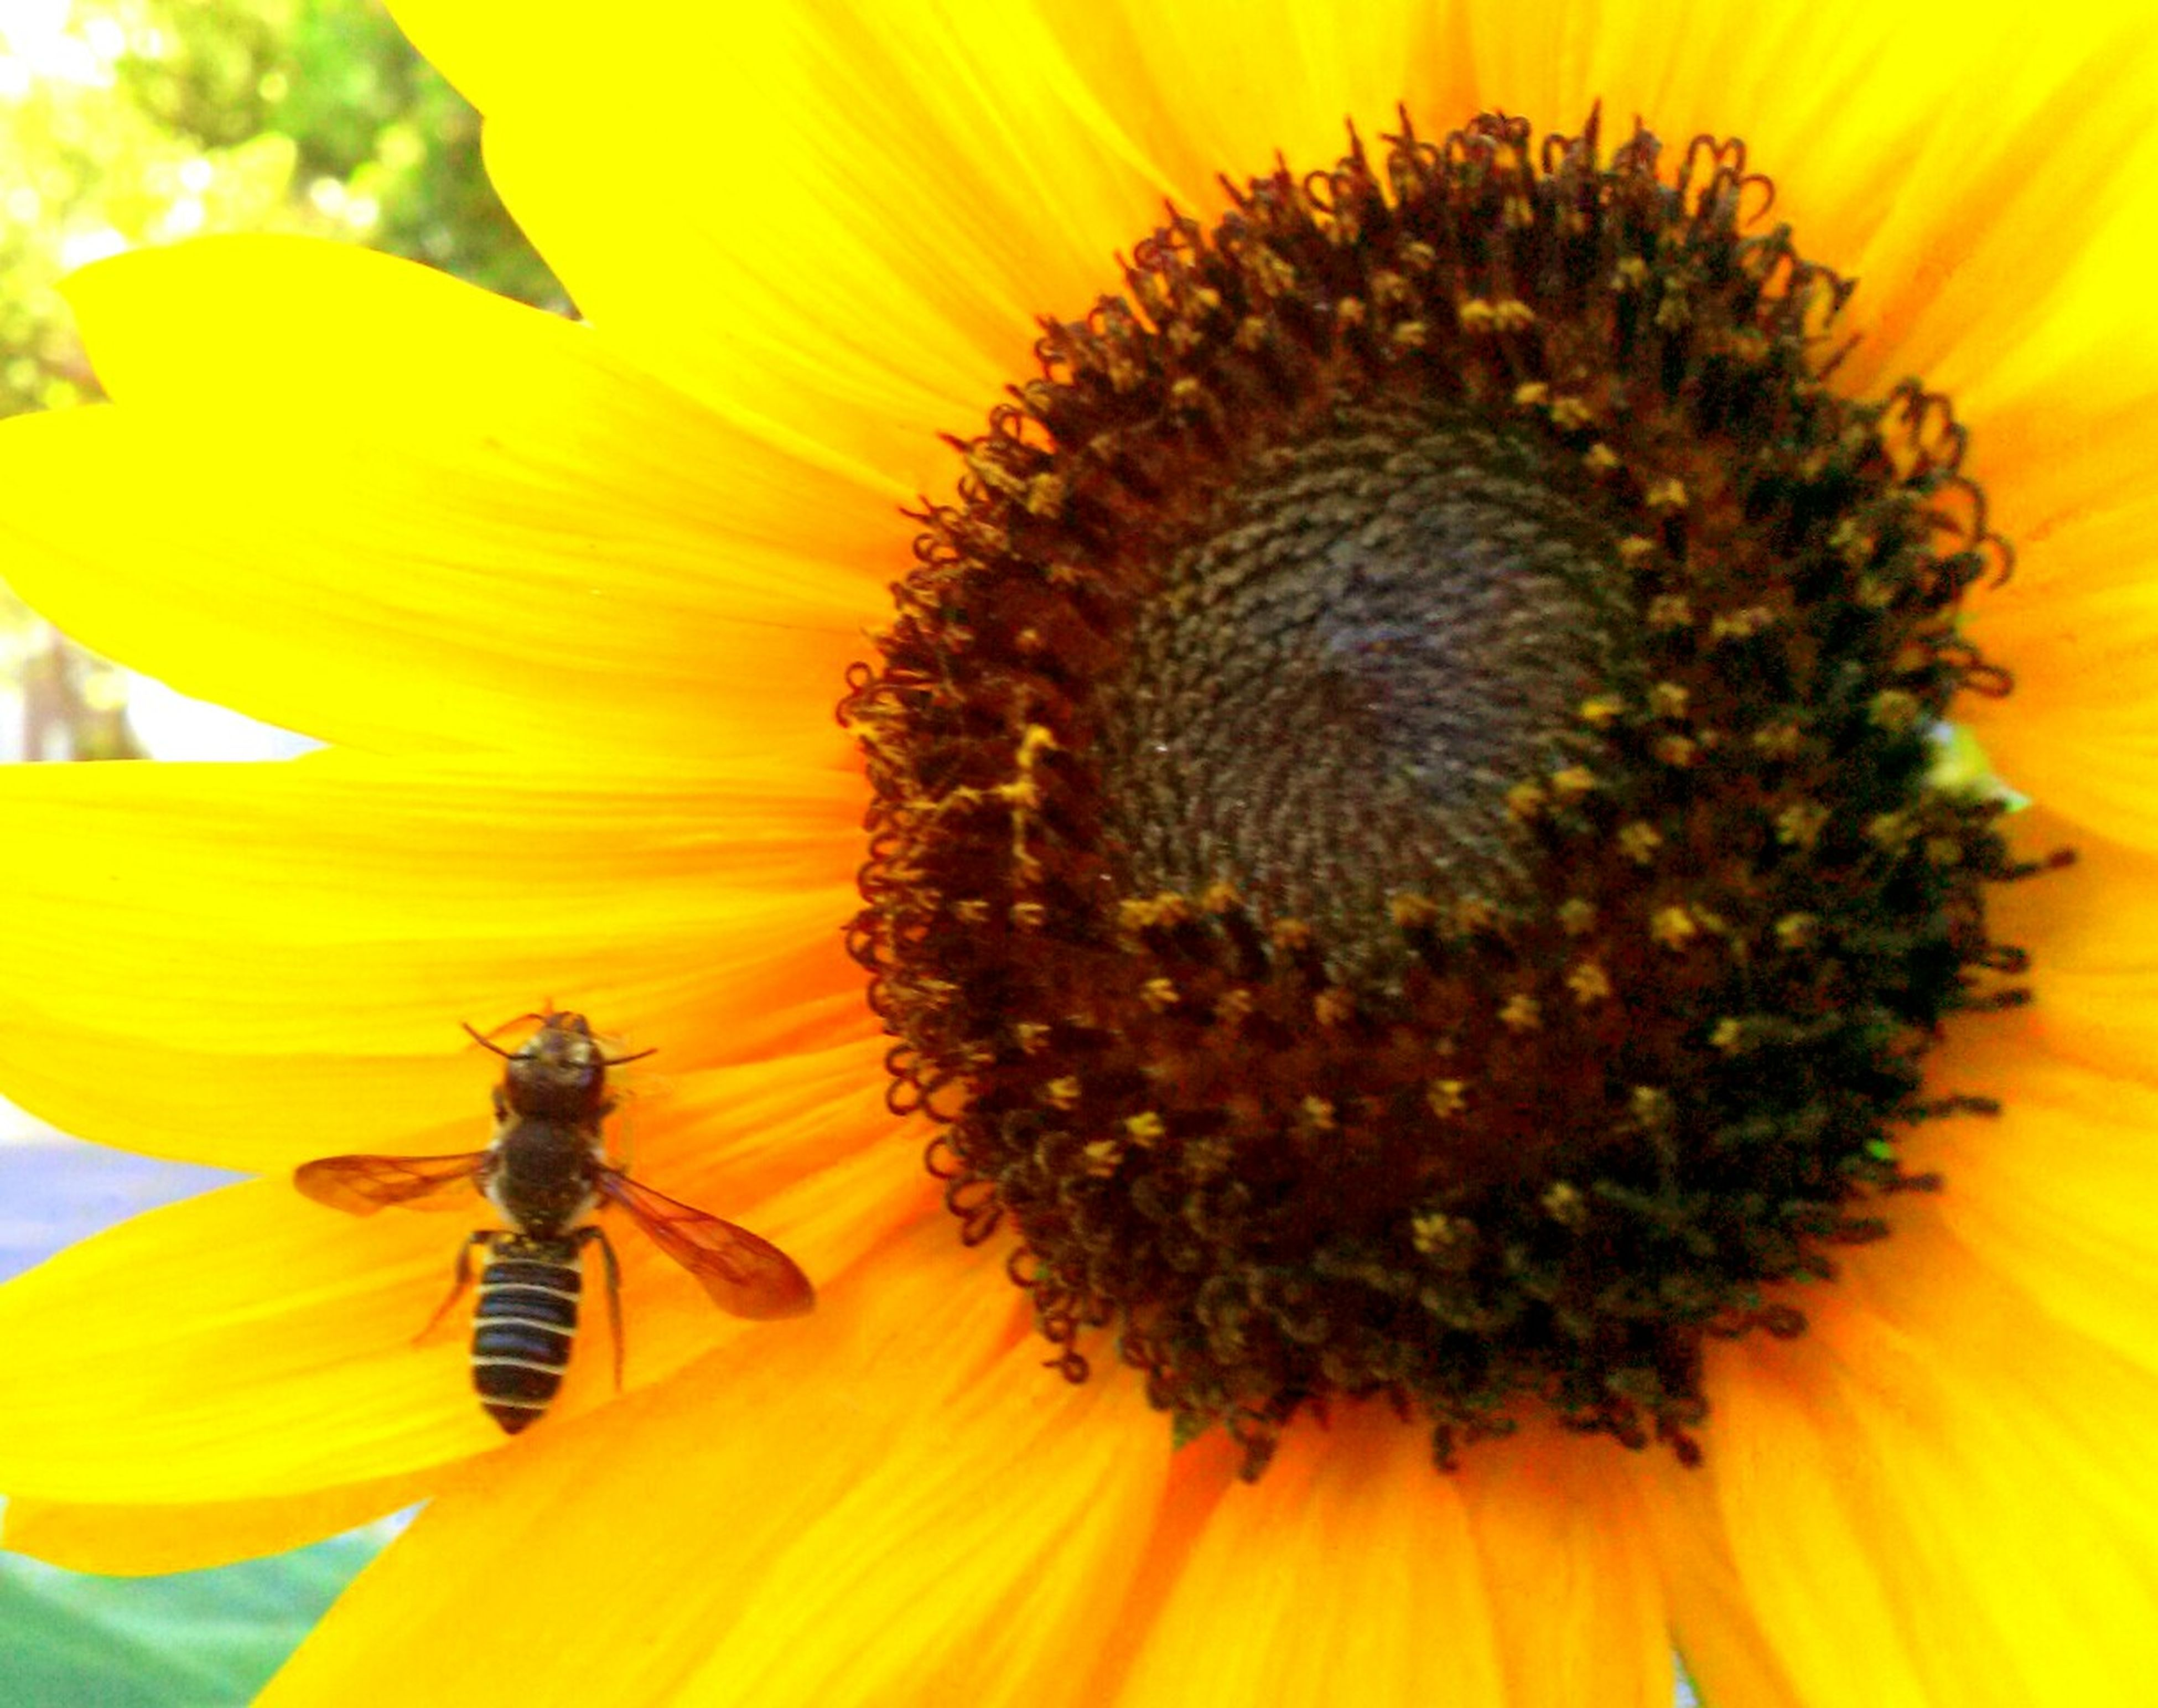 flower, insect, yellow, petal, animals in the wild, one animal, animal themes, flower head, wildlife, freshness, pollination, fragility, pollen, sunflower, close-up, beauty in nature, growth, symbiotic relationship, bee, nature